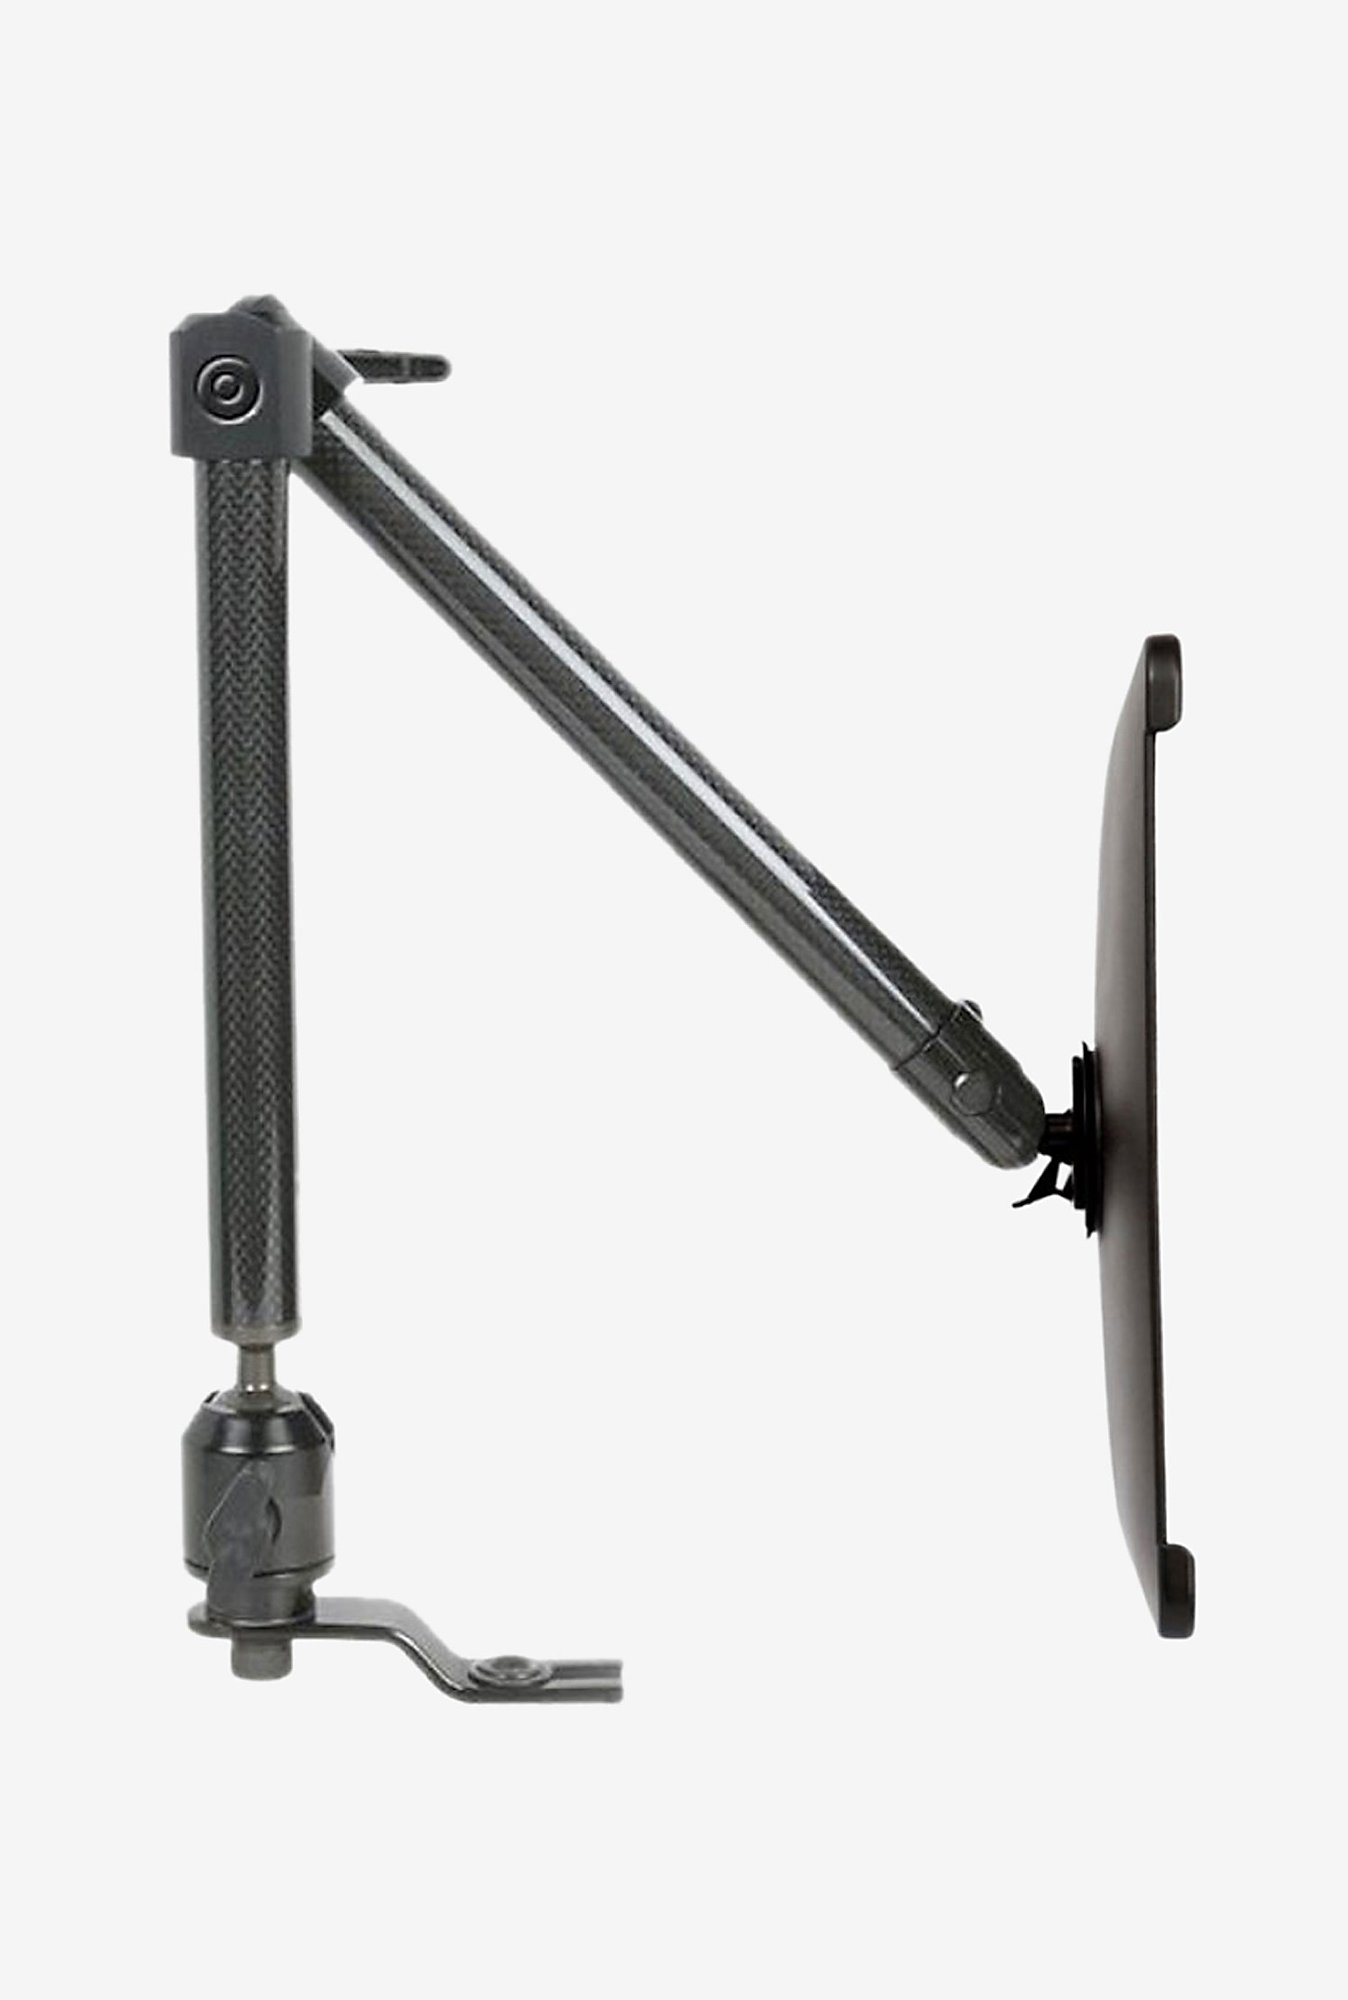 The Joy Factory iPad AAB103 Bolt Mount Black